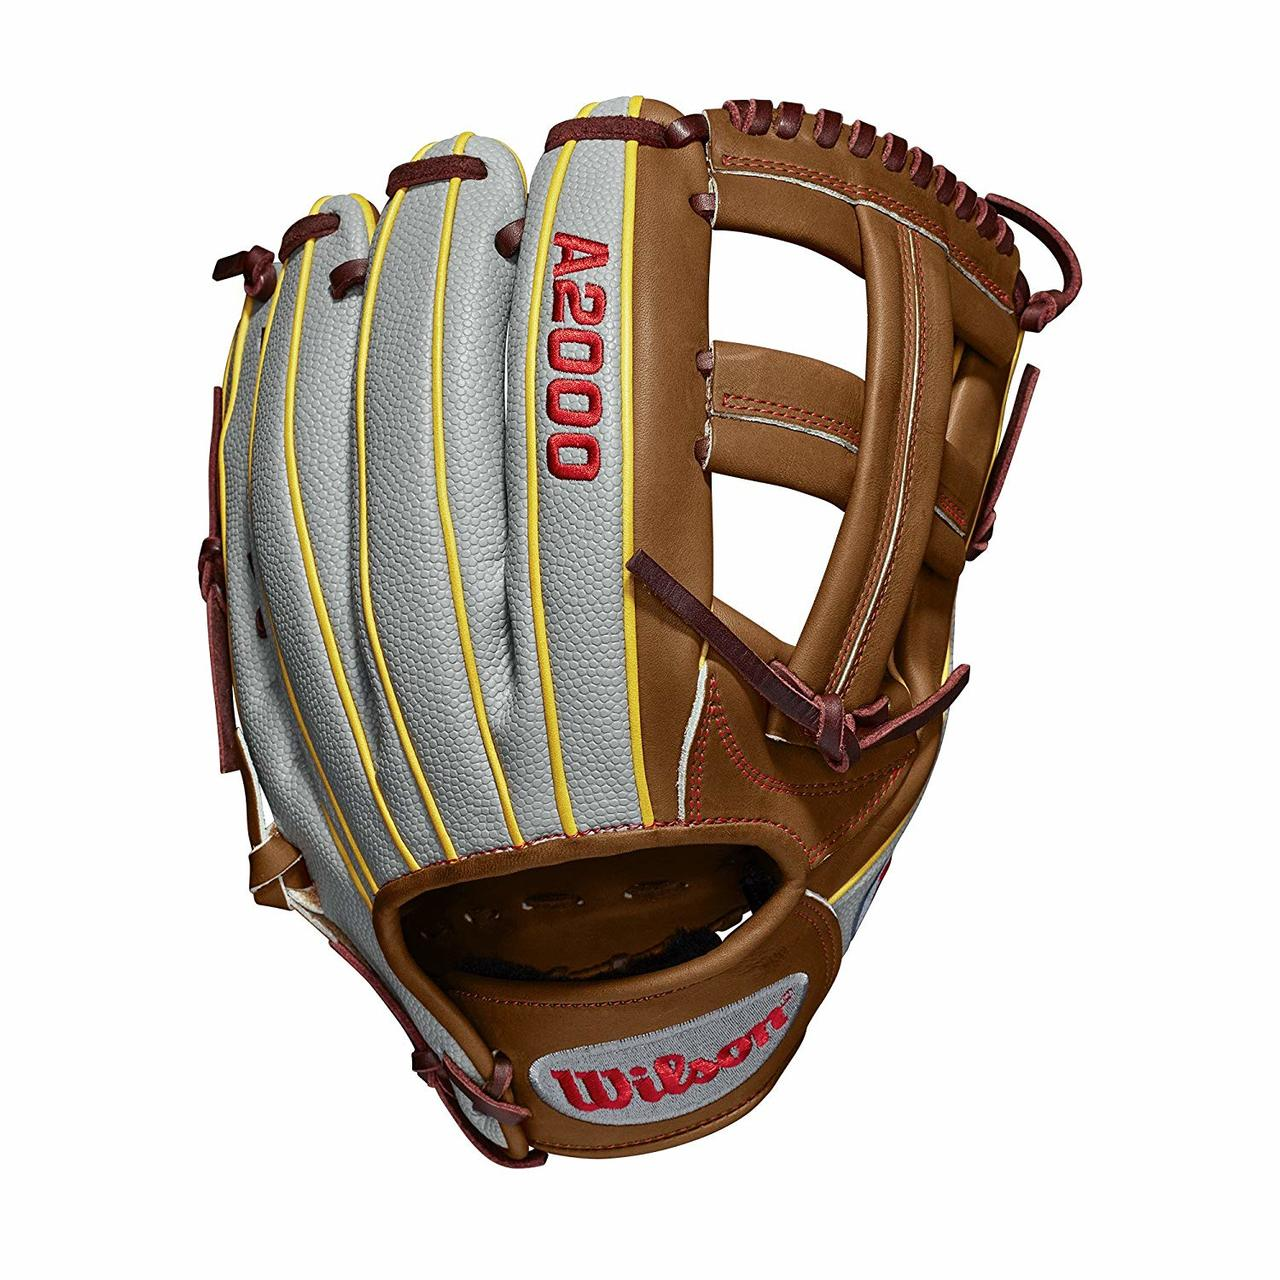 wilson-a2000-dp15-pedroia-fit-11-75-baseball-glove-2019-right-hand-throw WTA20RB19DP15GM-RightHandThrow  887768732288 Game WTA20RB19DP15GM for Dustin pedroia; Cross web Grey SuperSkin with saddle